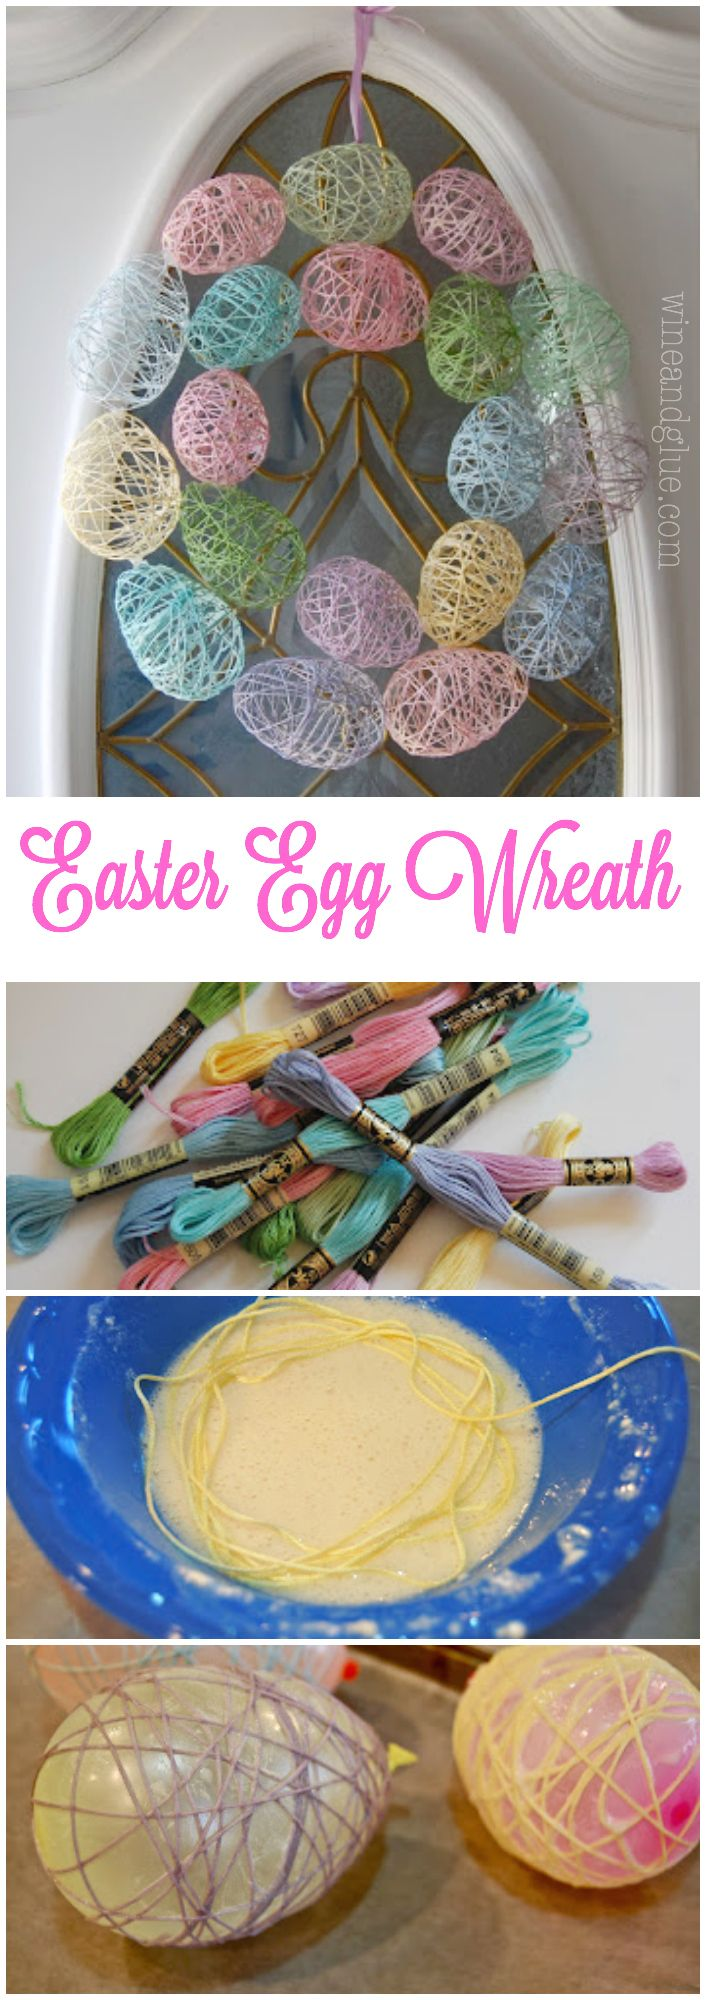 15 easter decorating ideas pretty designs egg wreath negle Choice Image